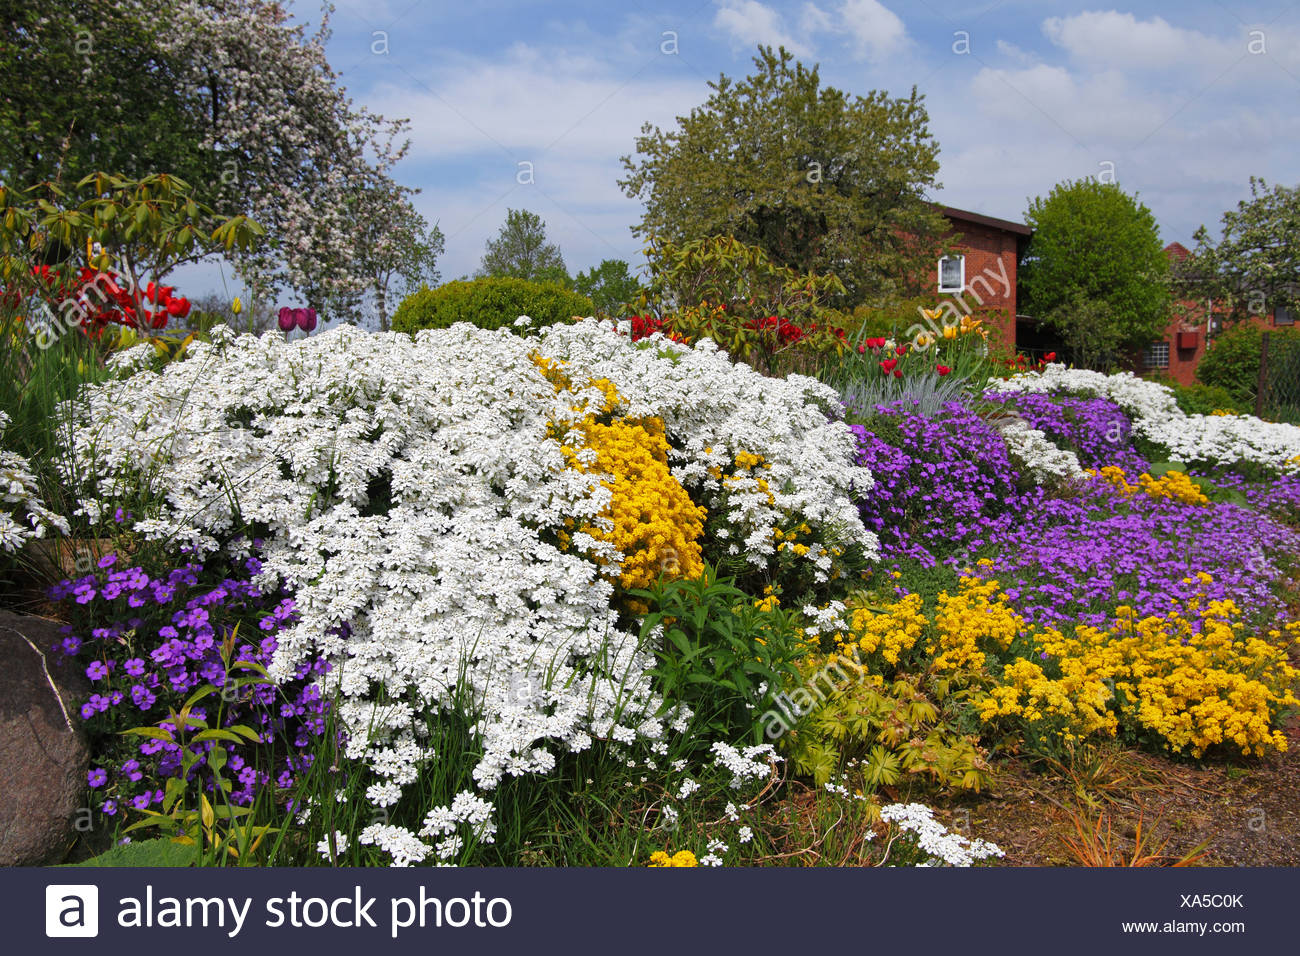 Rural garden in the spring with herbaceous plants like white Evergreen Candytuft (Iberis sempervirens), yellow Basket of Gold or - Stock Image